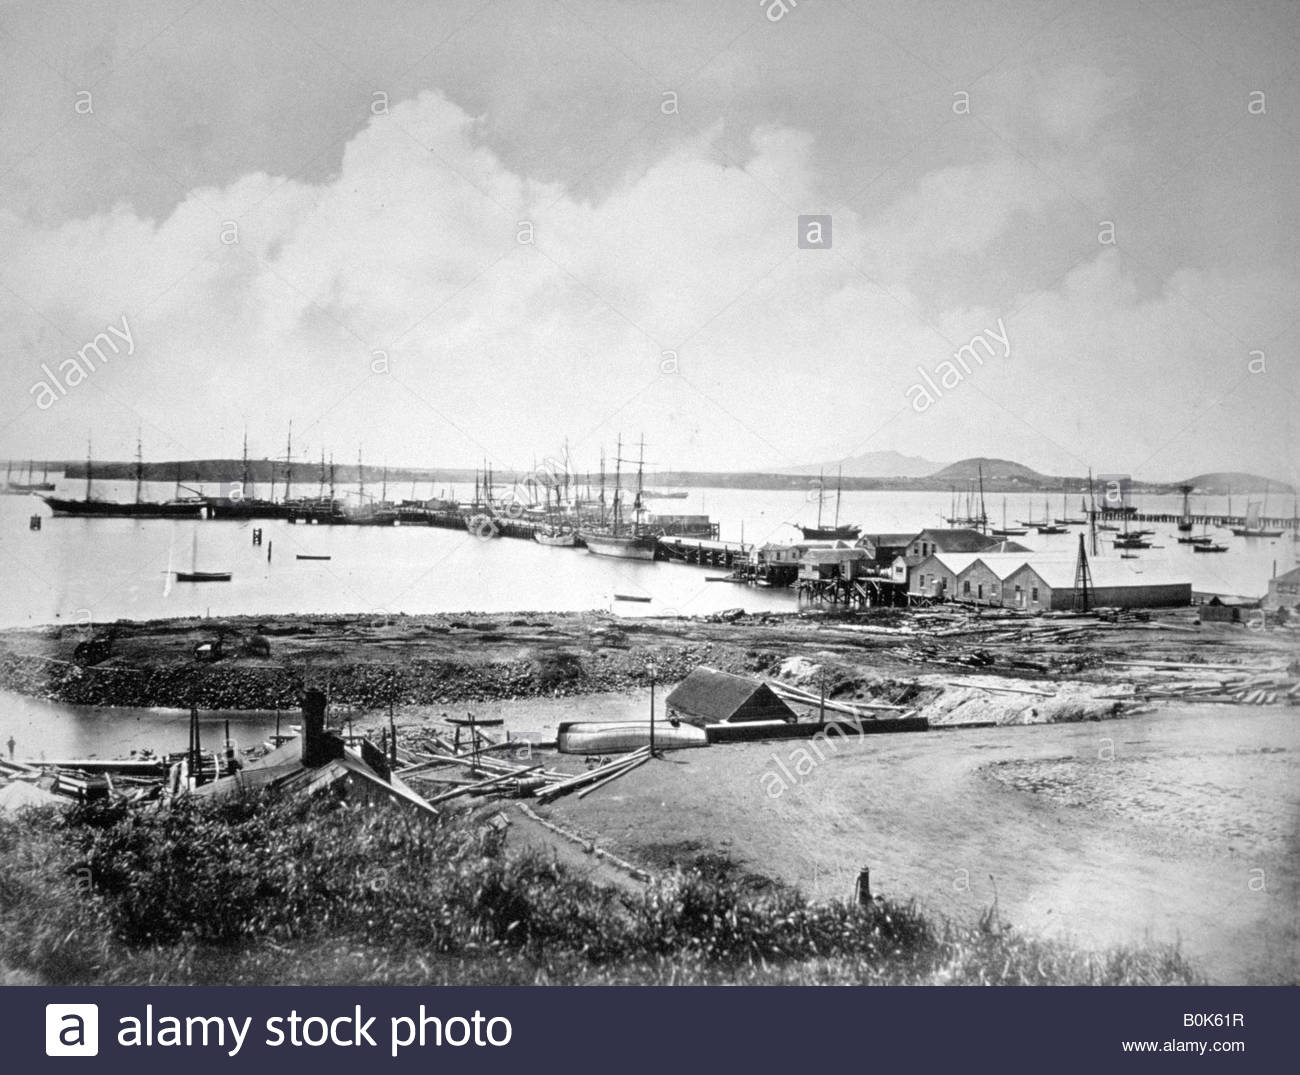 The port, Auckland, New Zealand, c1870-1880. Stock Photo